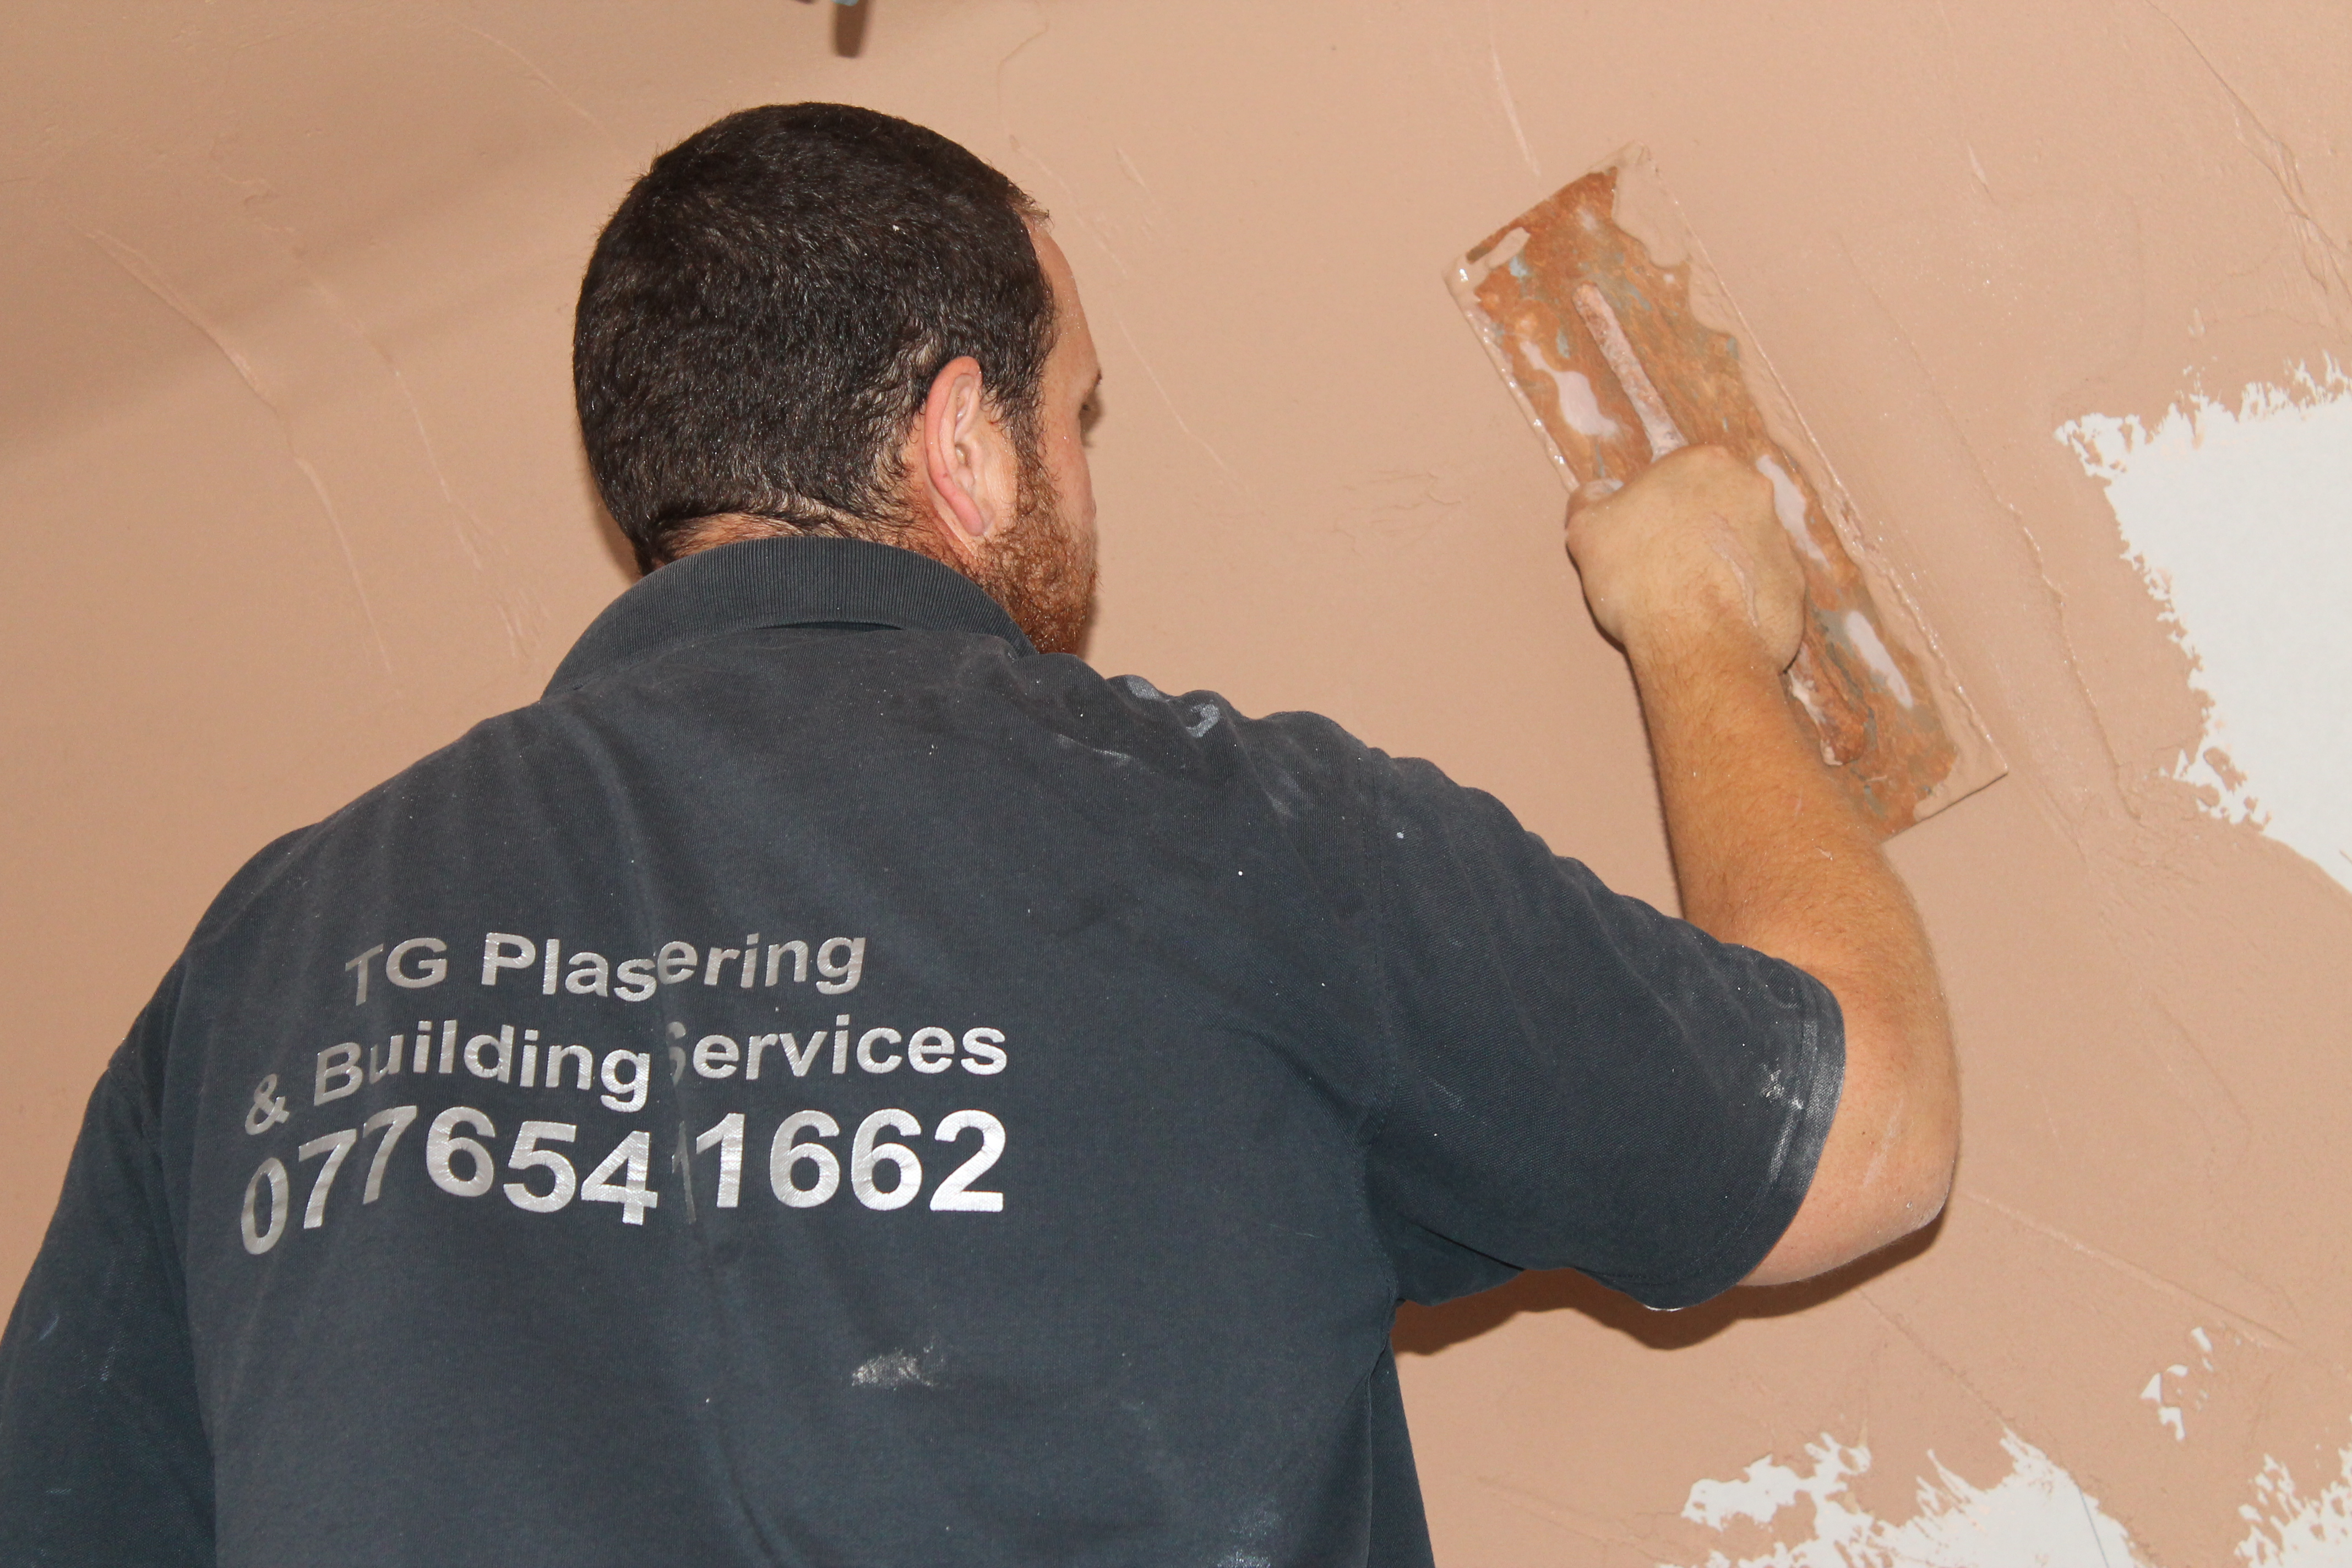 TG plastering & building services